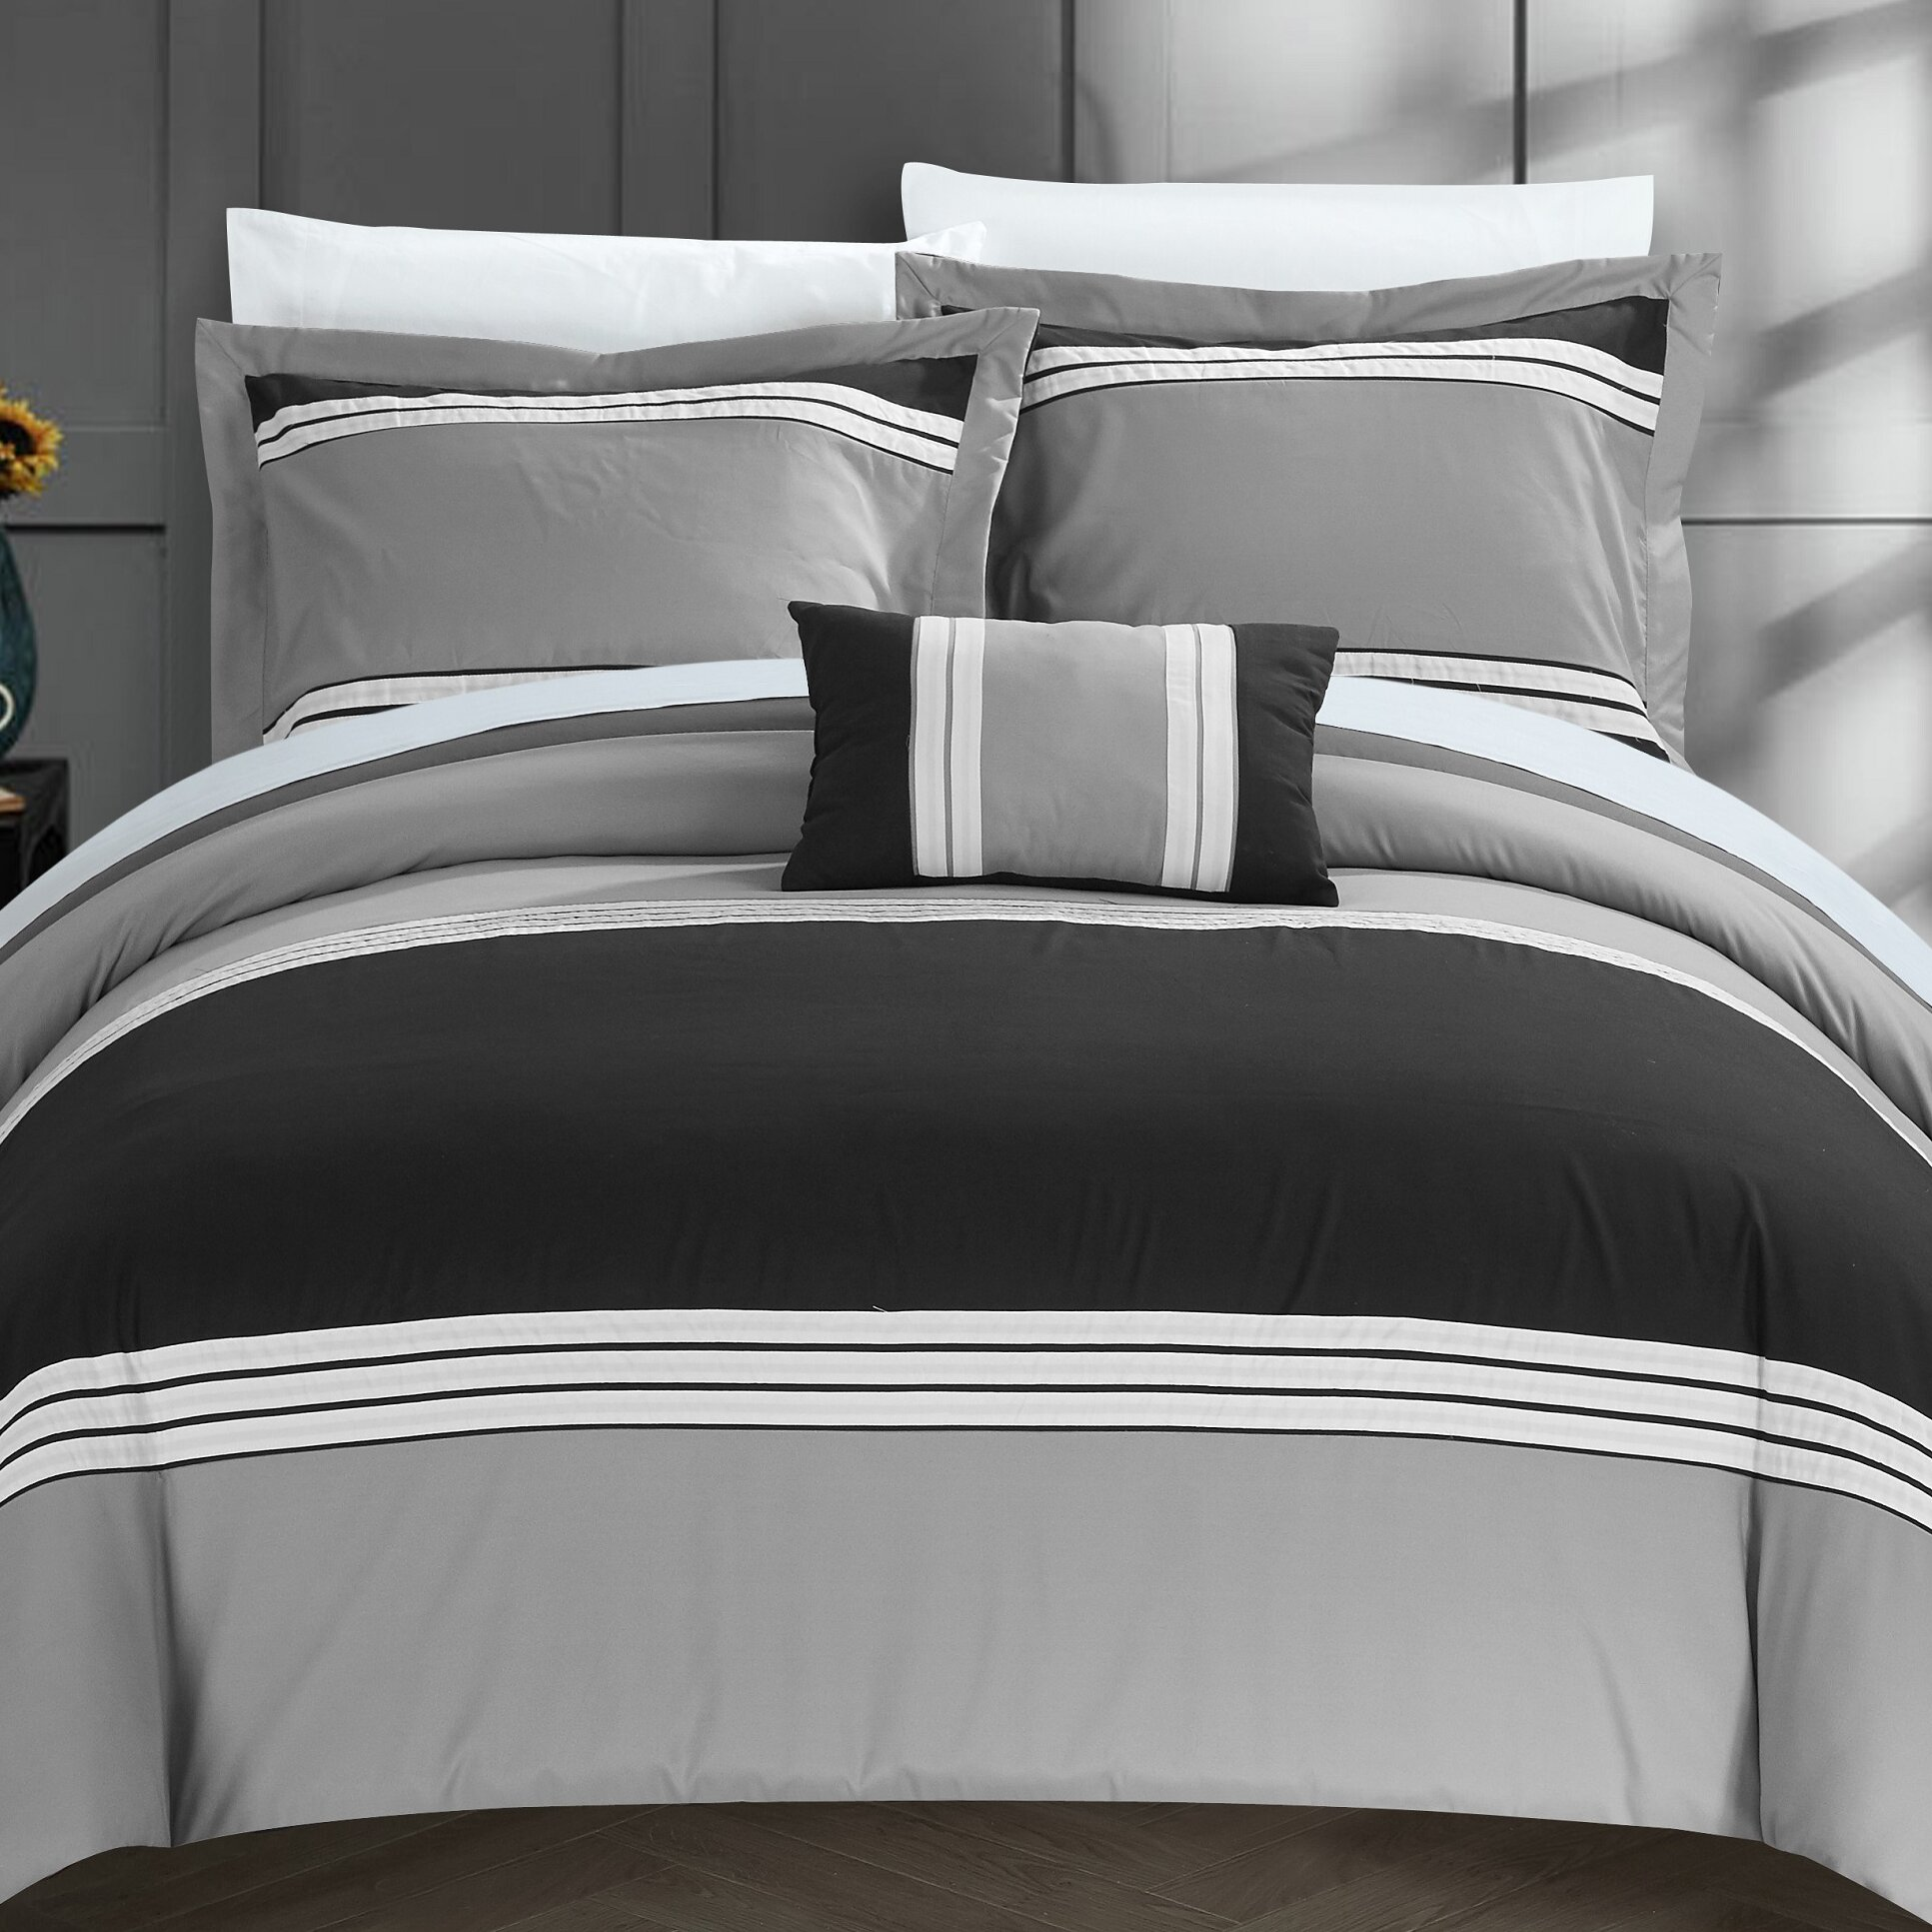 Reviews On Hotel Collection Bedding: Chic Home Madison Hotel Duvet Cover Set & Reviews